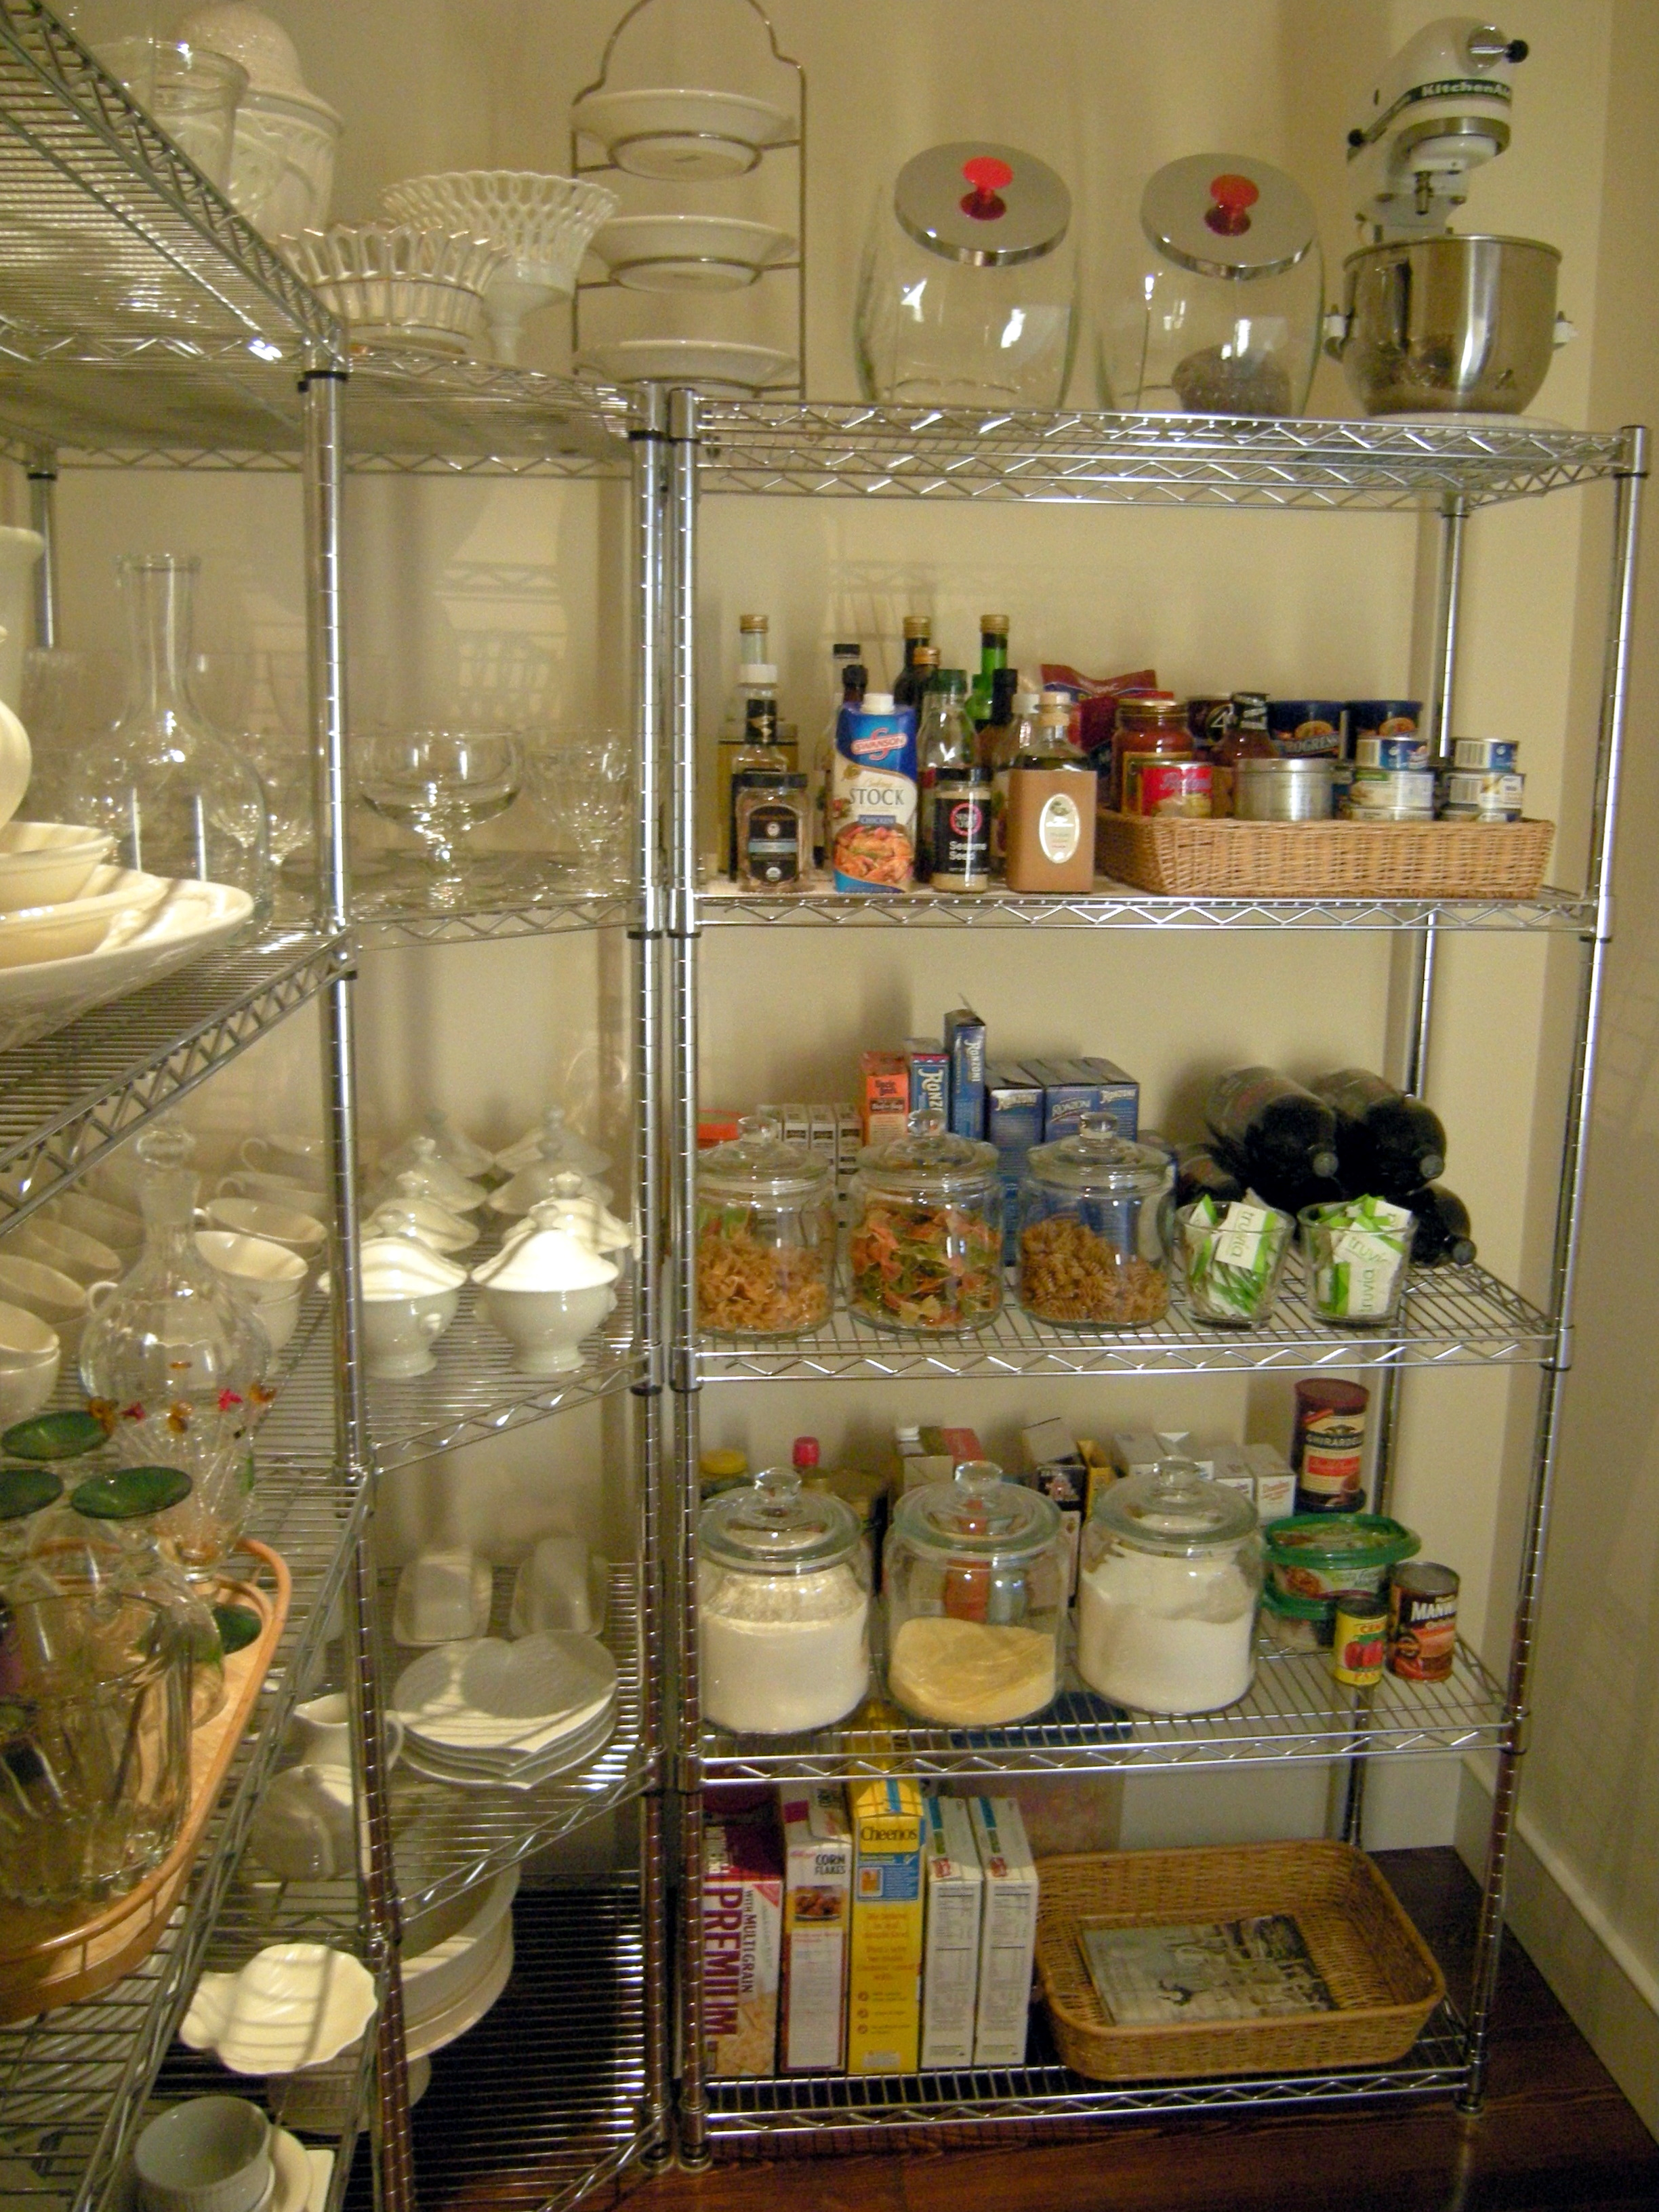 Ina Garten Pantry Pleasing With Rustic ShelvesPantry Picture